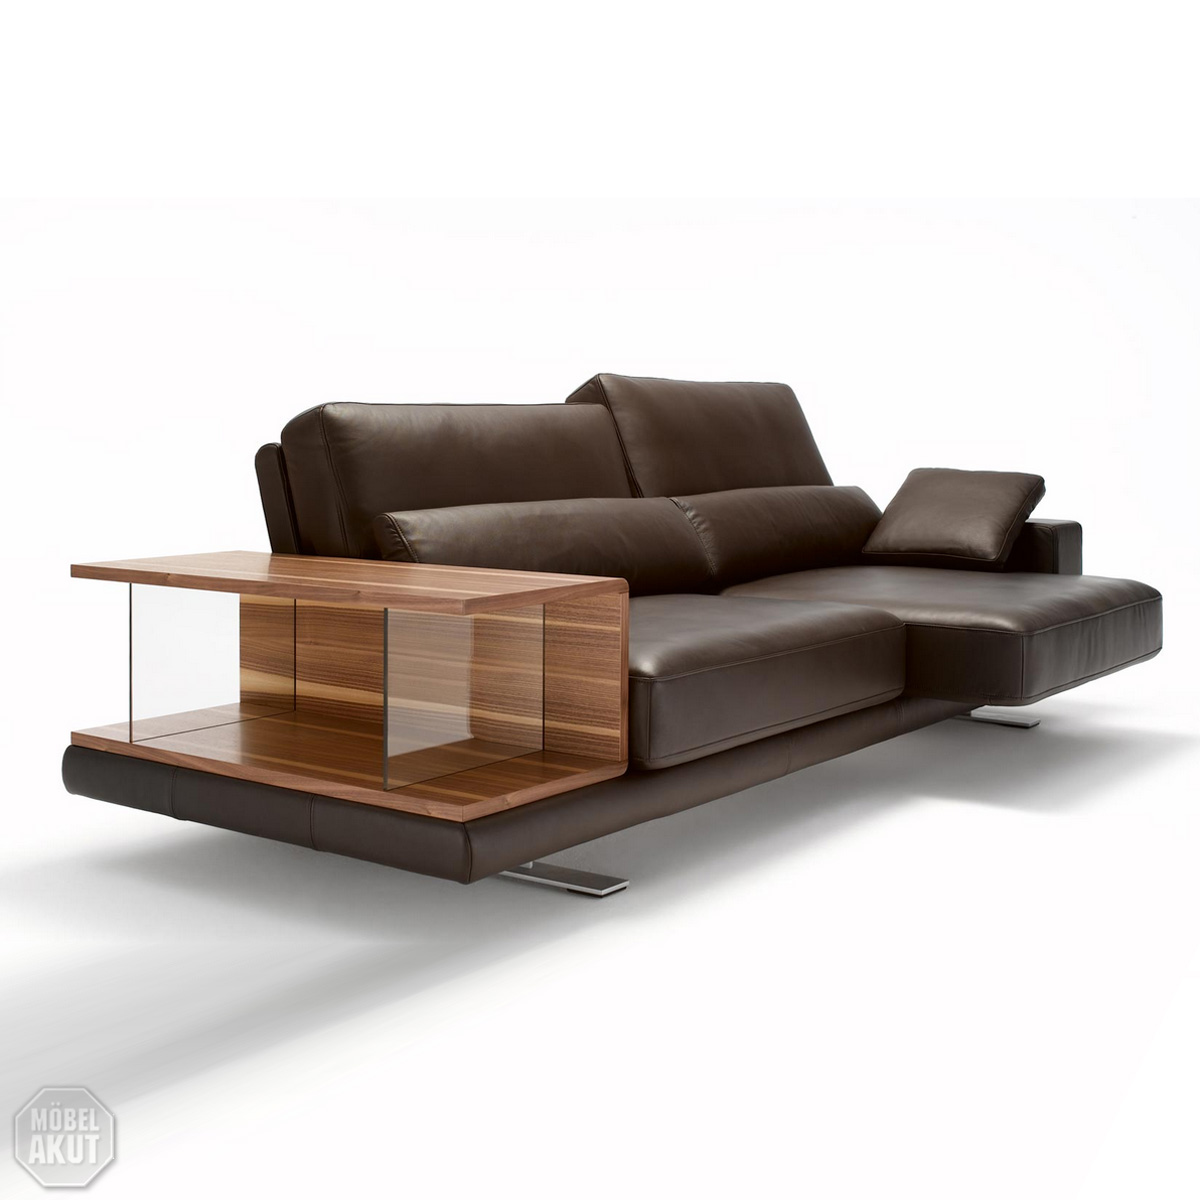 sofabank vero 556 rolf benz sofa funktionssofa leder. Black Bedroom Furniture Sets. Home Design Ideas